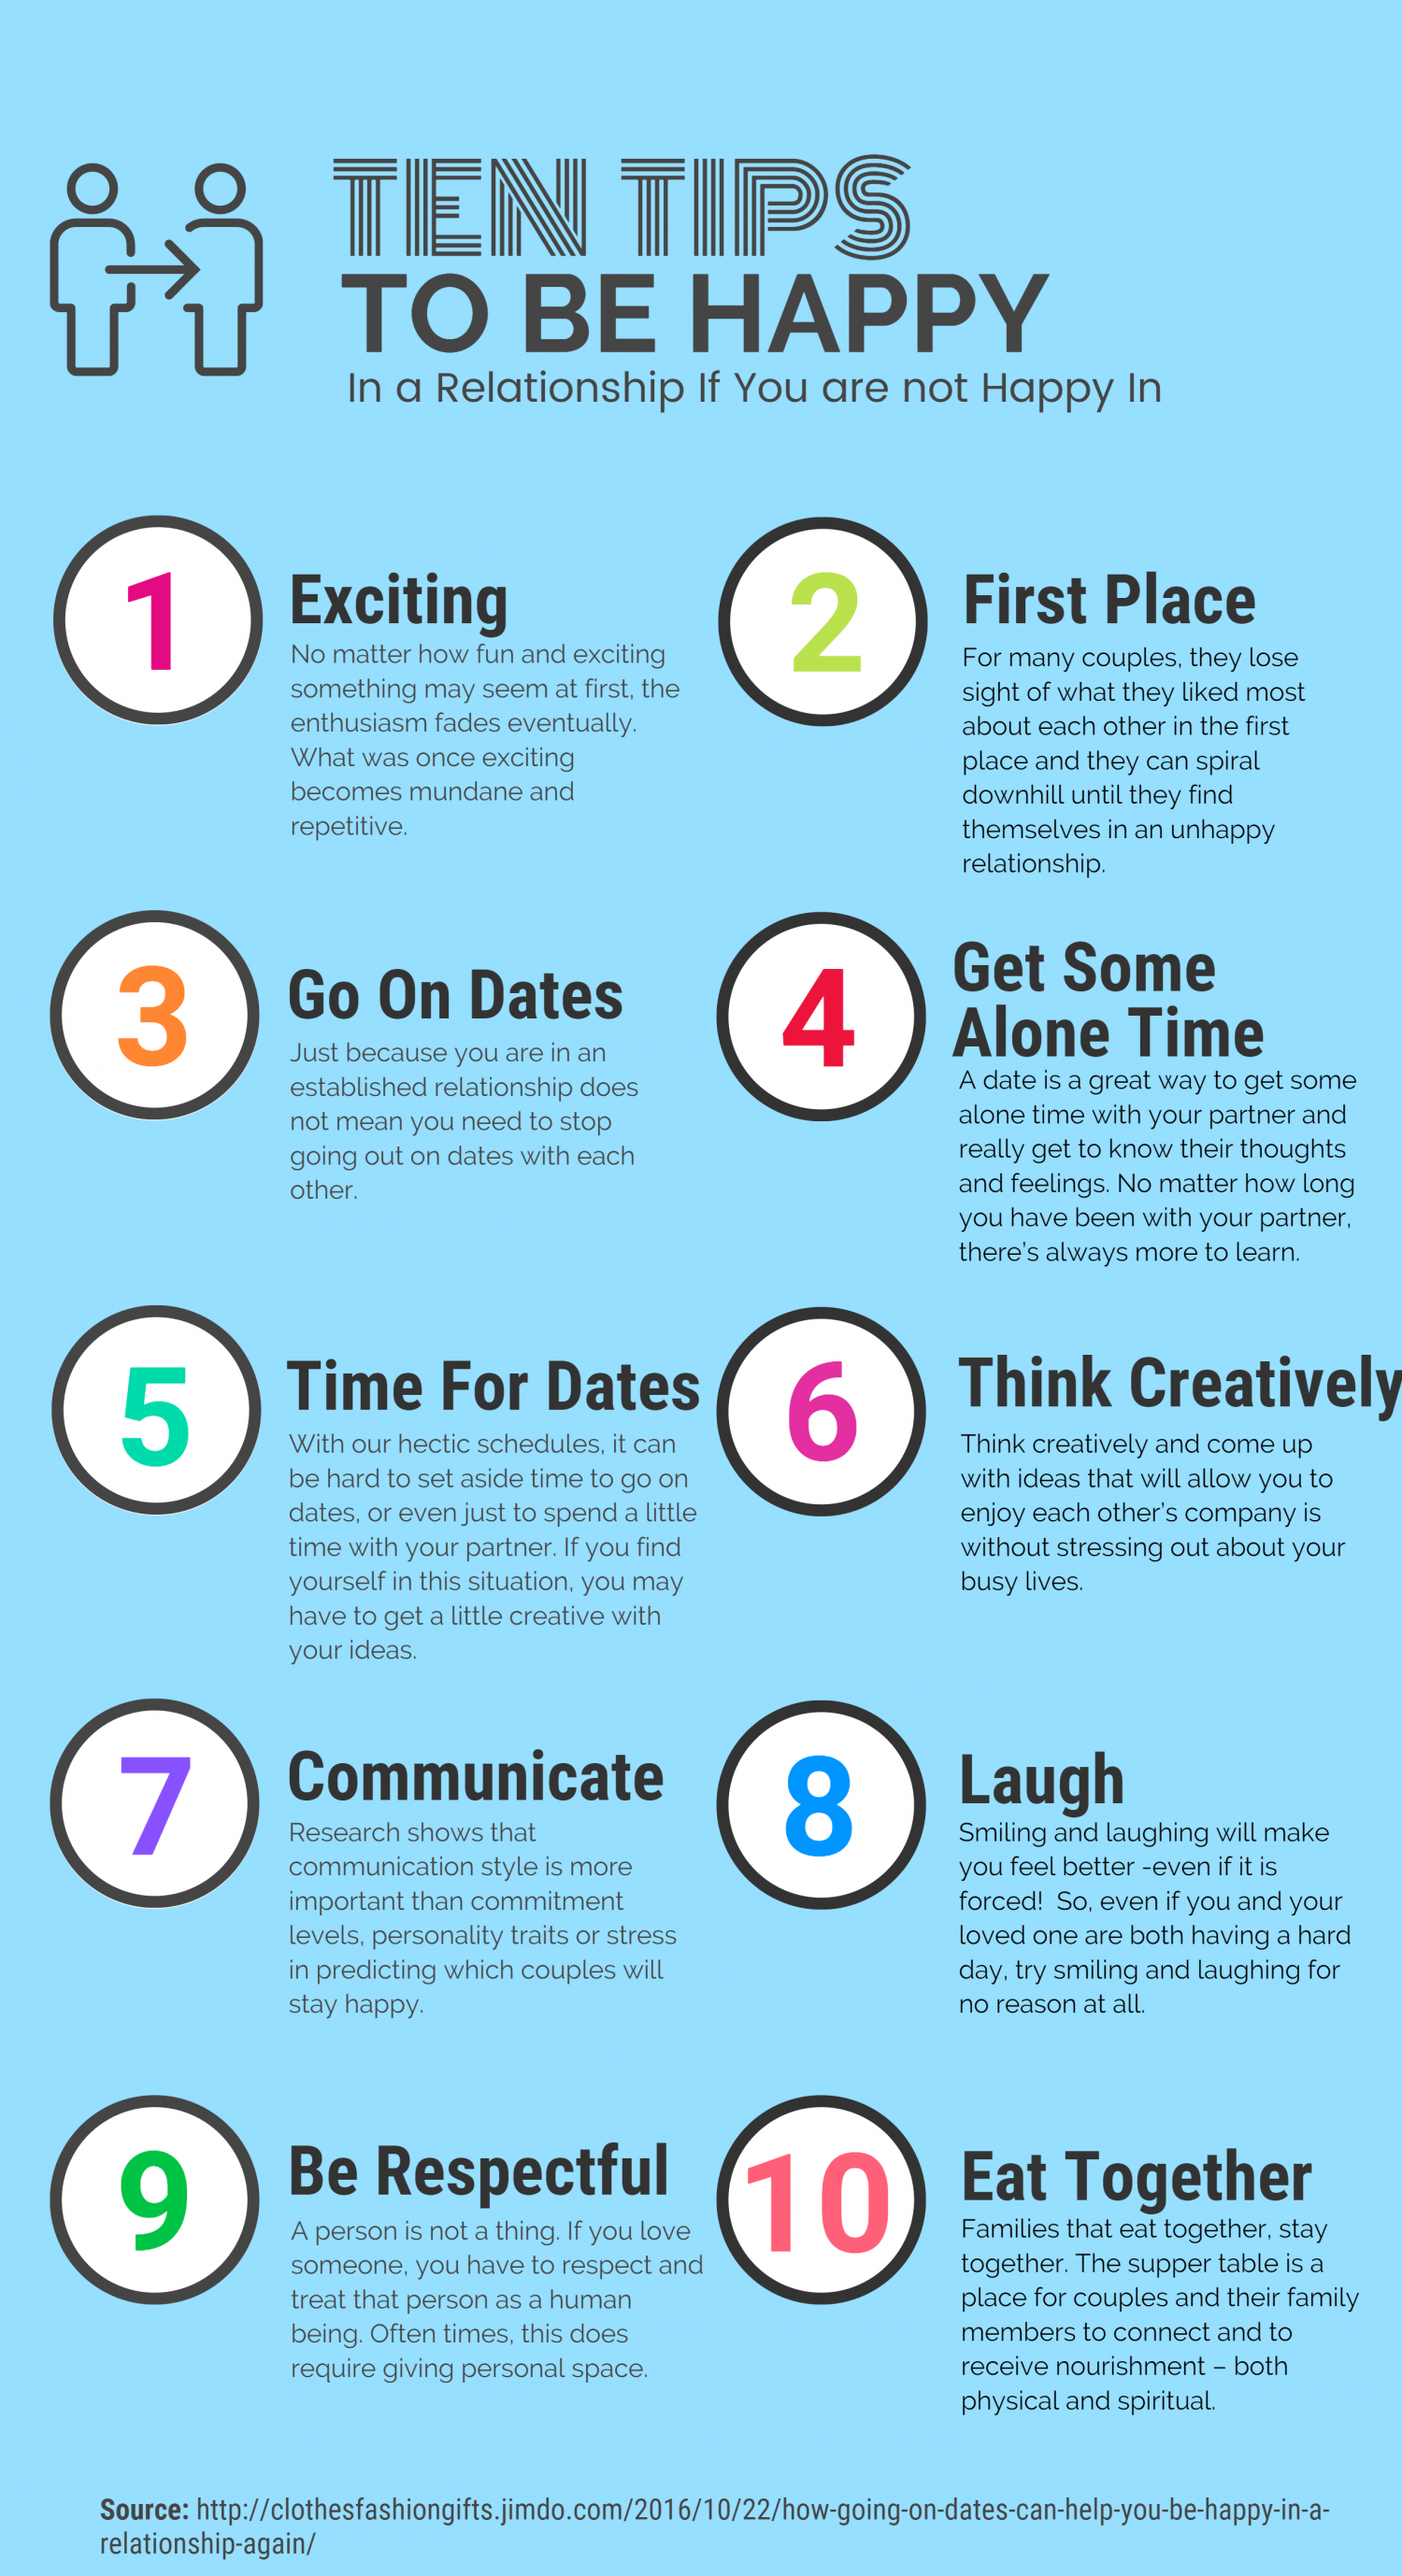 Infographic Ten Tips To Be Happy In A Relationship That You Are Not Happy In as well Barry Gibson Robbed Satire 4926042 in addition Will Airbnbs New Genitalia Esque Logo Hurt Brand besides Hailee Steinfeld Responds Dating Justin Bieber Rumor together with Okcupid. on dating logo